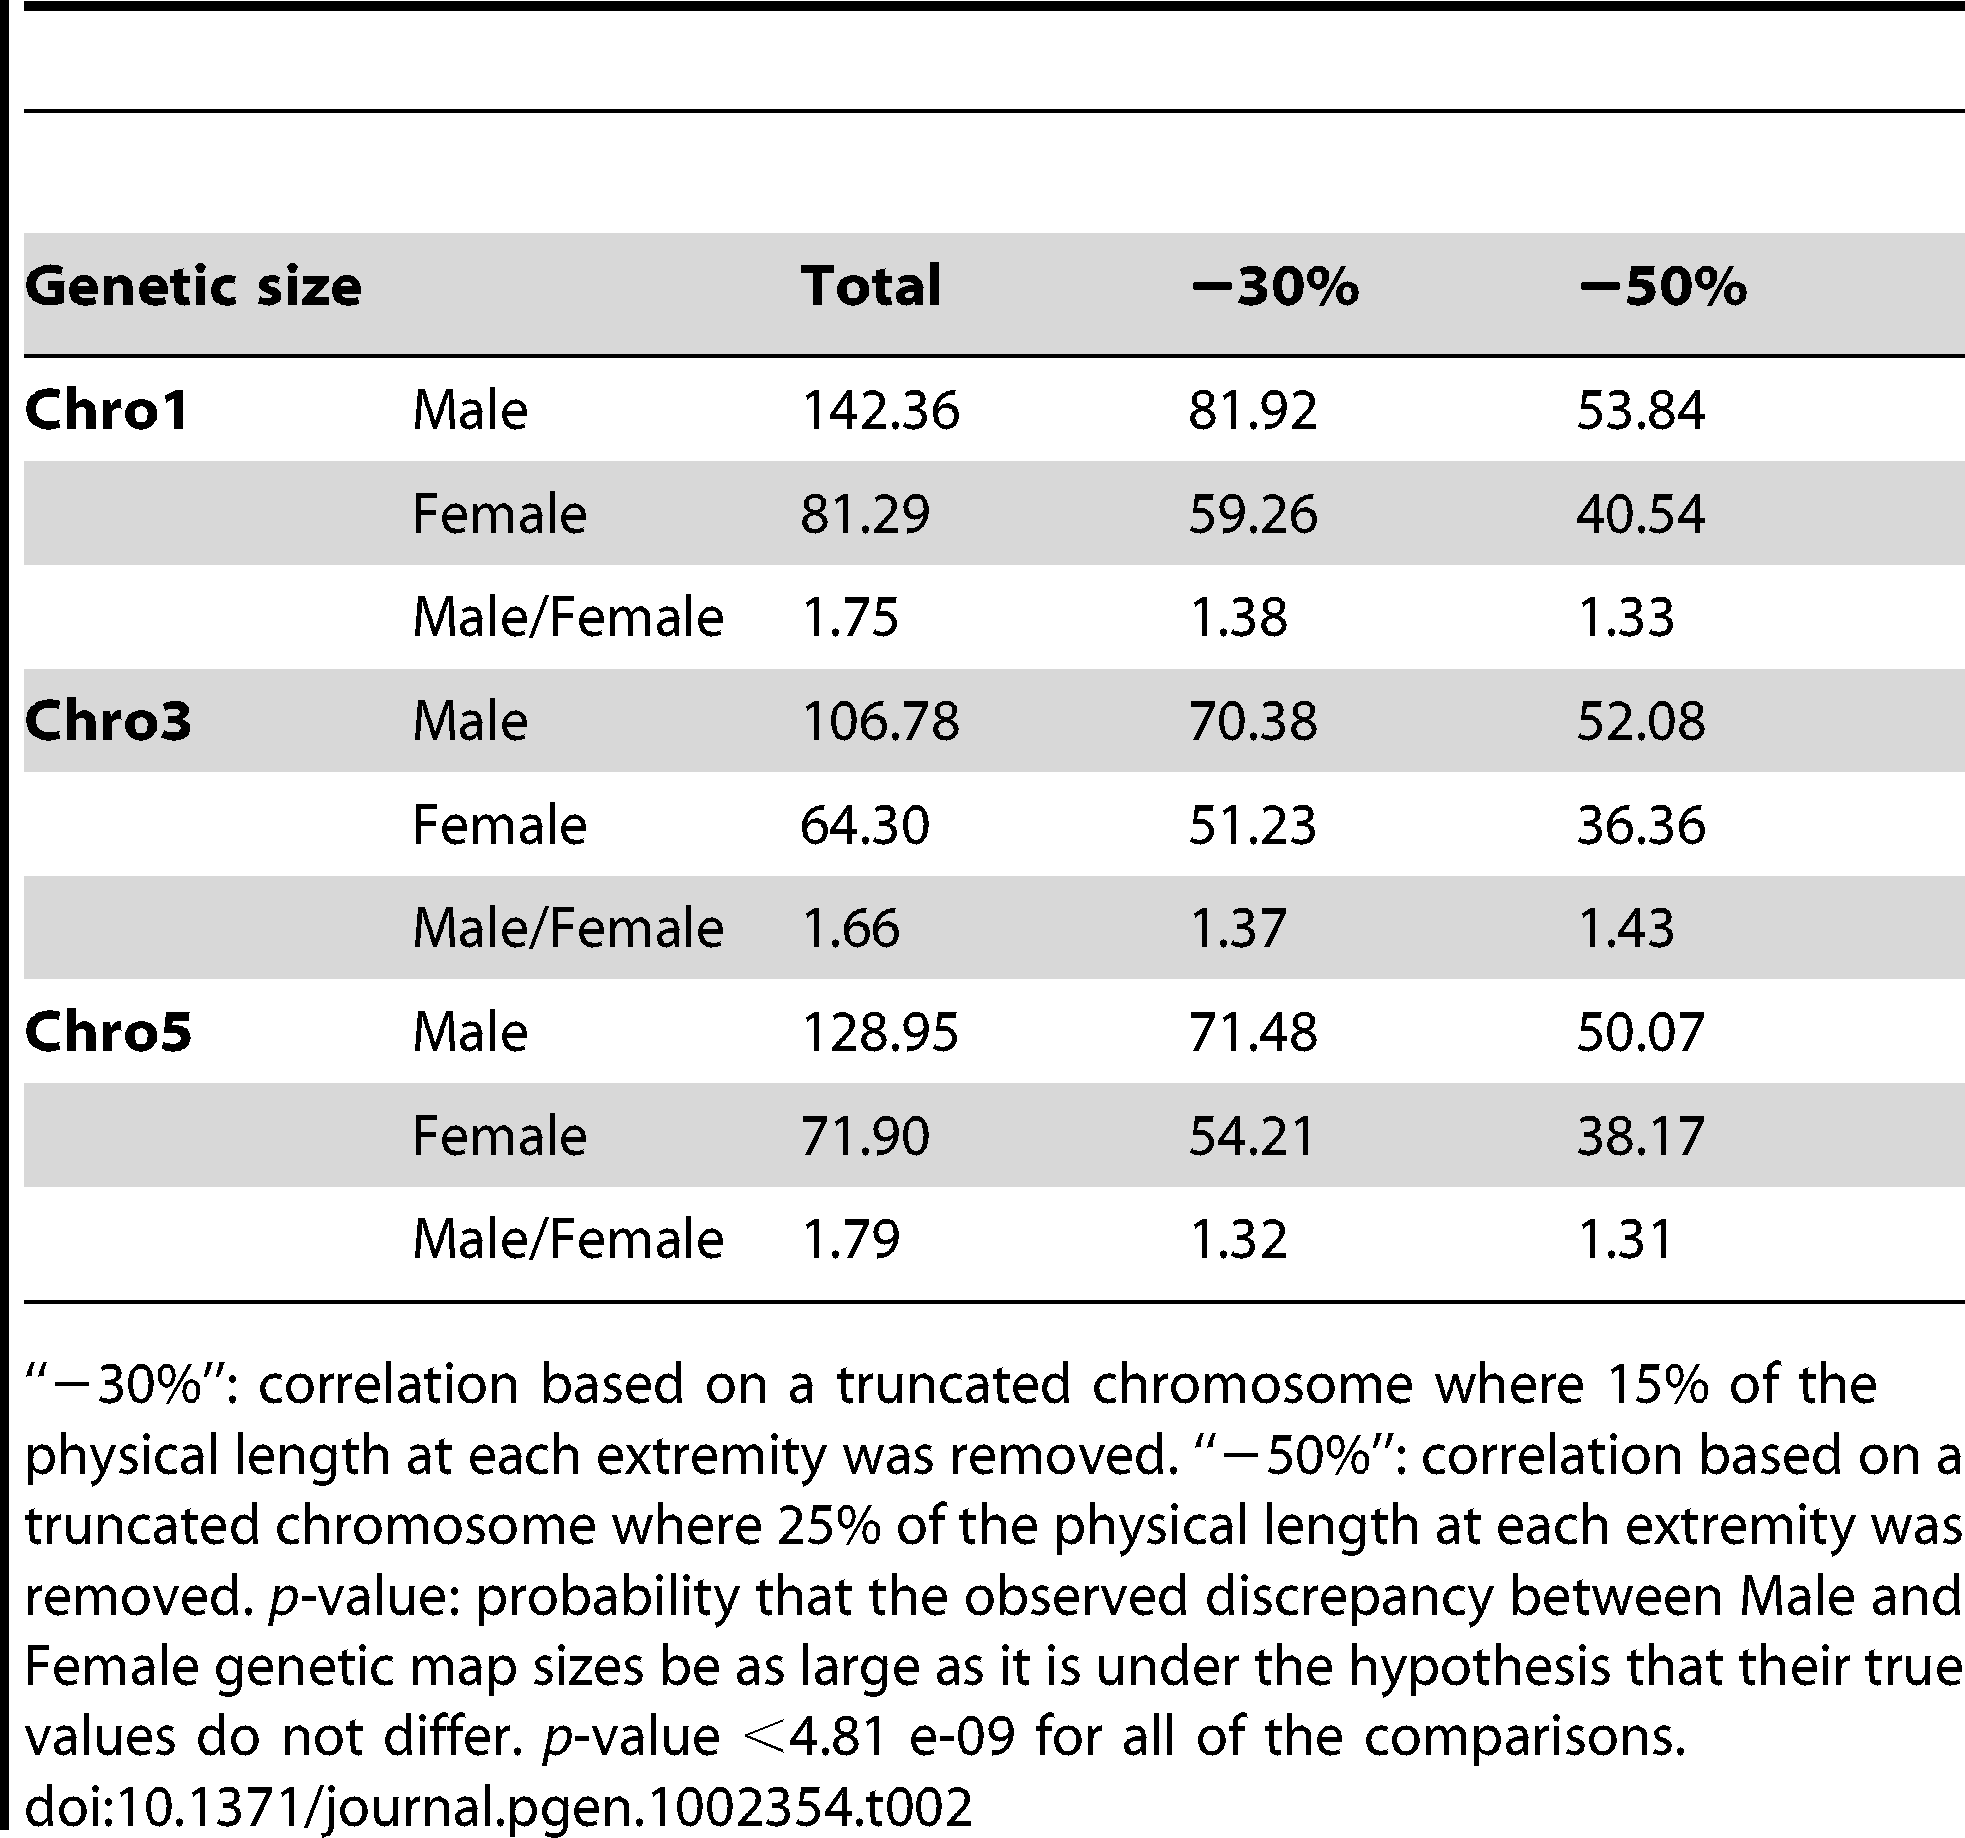 Comparison of male and female genetic map length with truncated chromosomes.